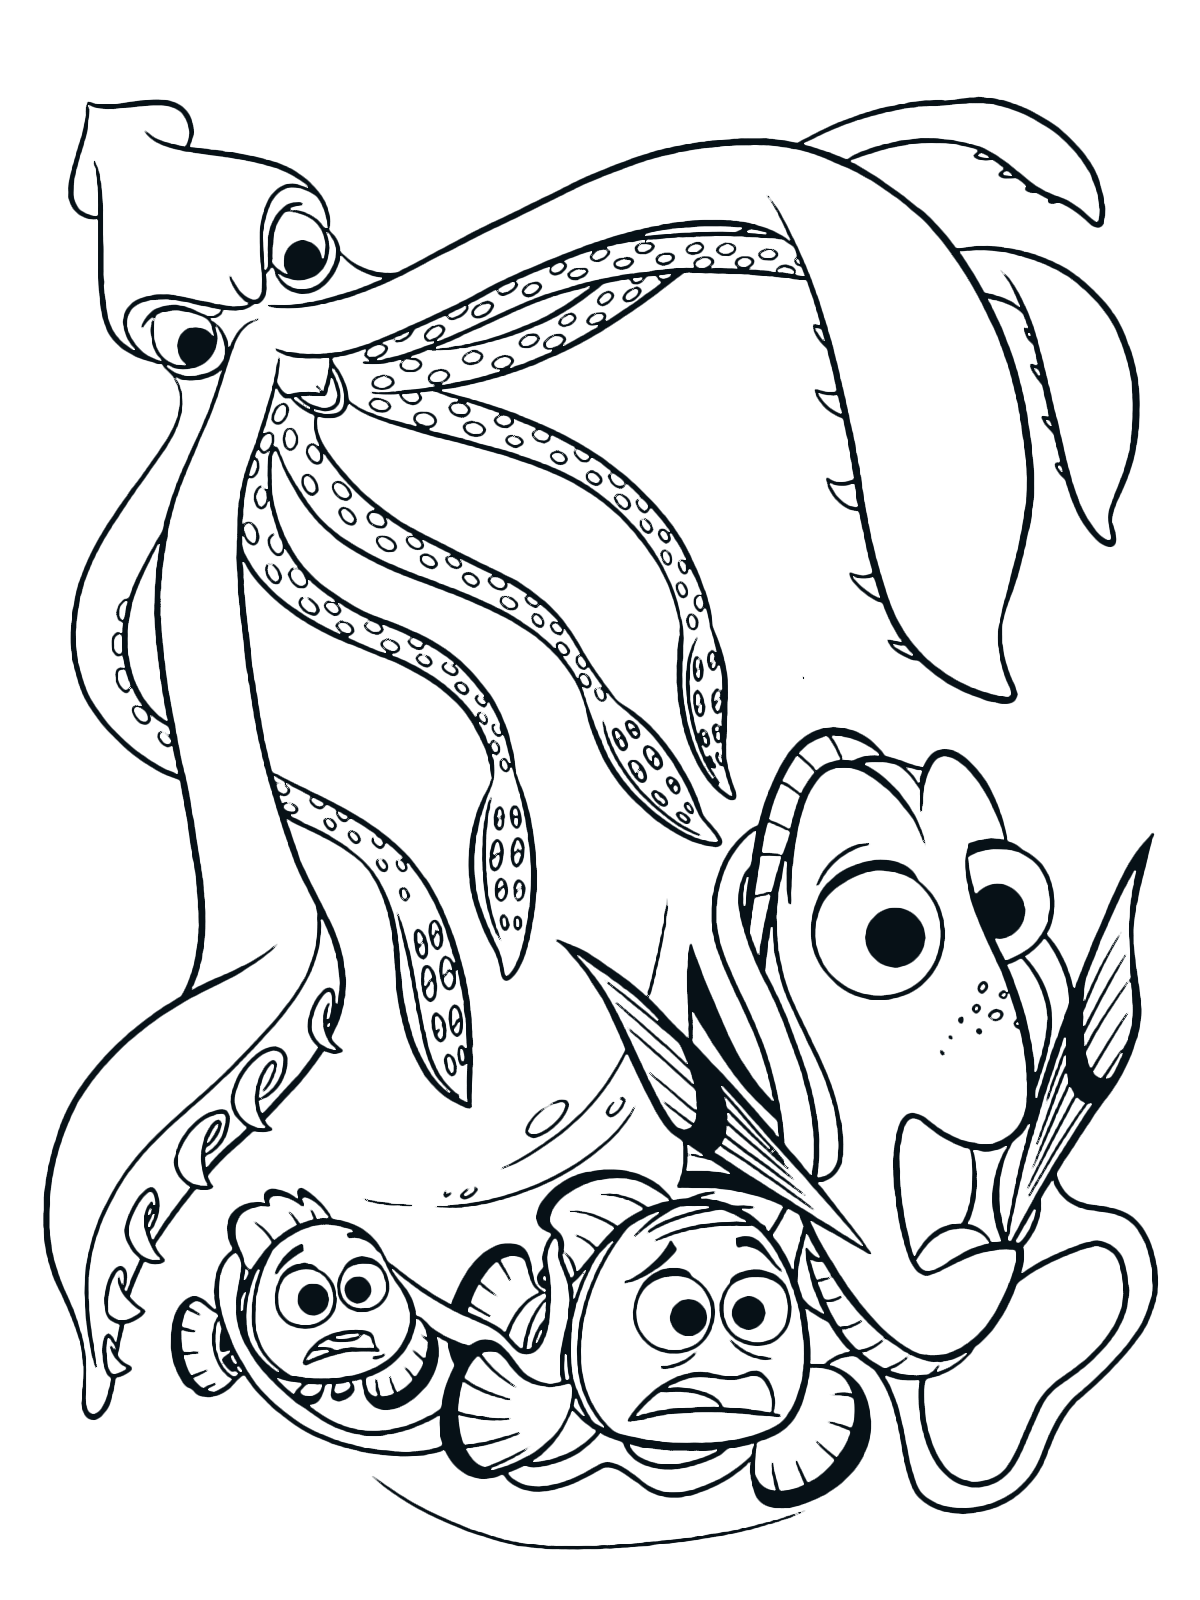 Finding Dory Coloring Page Dory Marlin And Nemo Are Attacked By A Giant Squid Nemo Coloring Pages Finding Nemo Coloring Pages Animal Coloring Pages